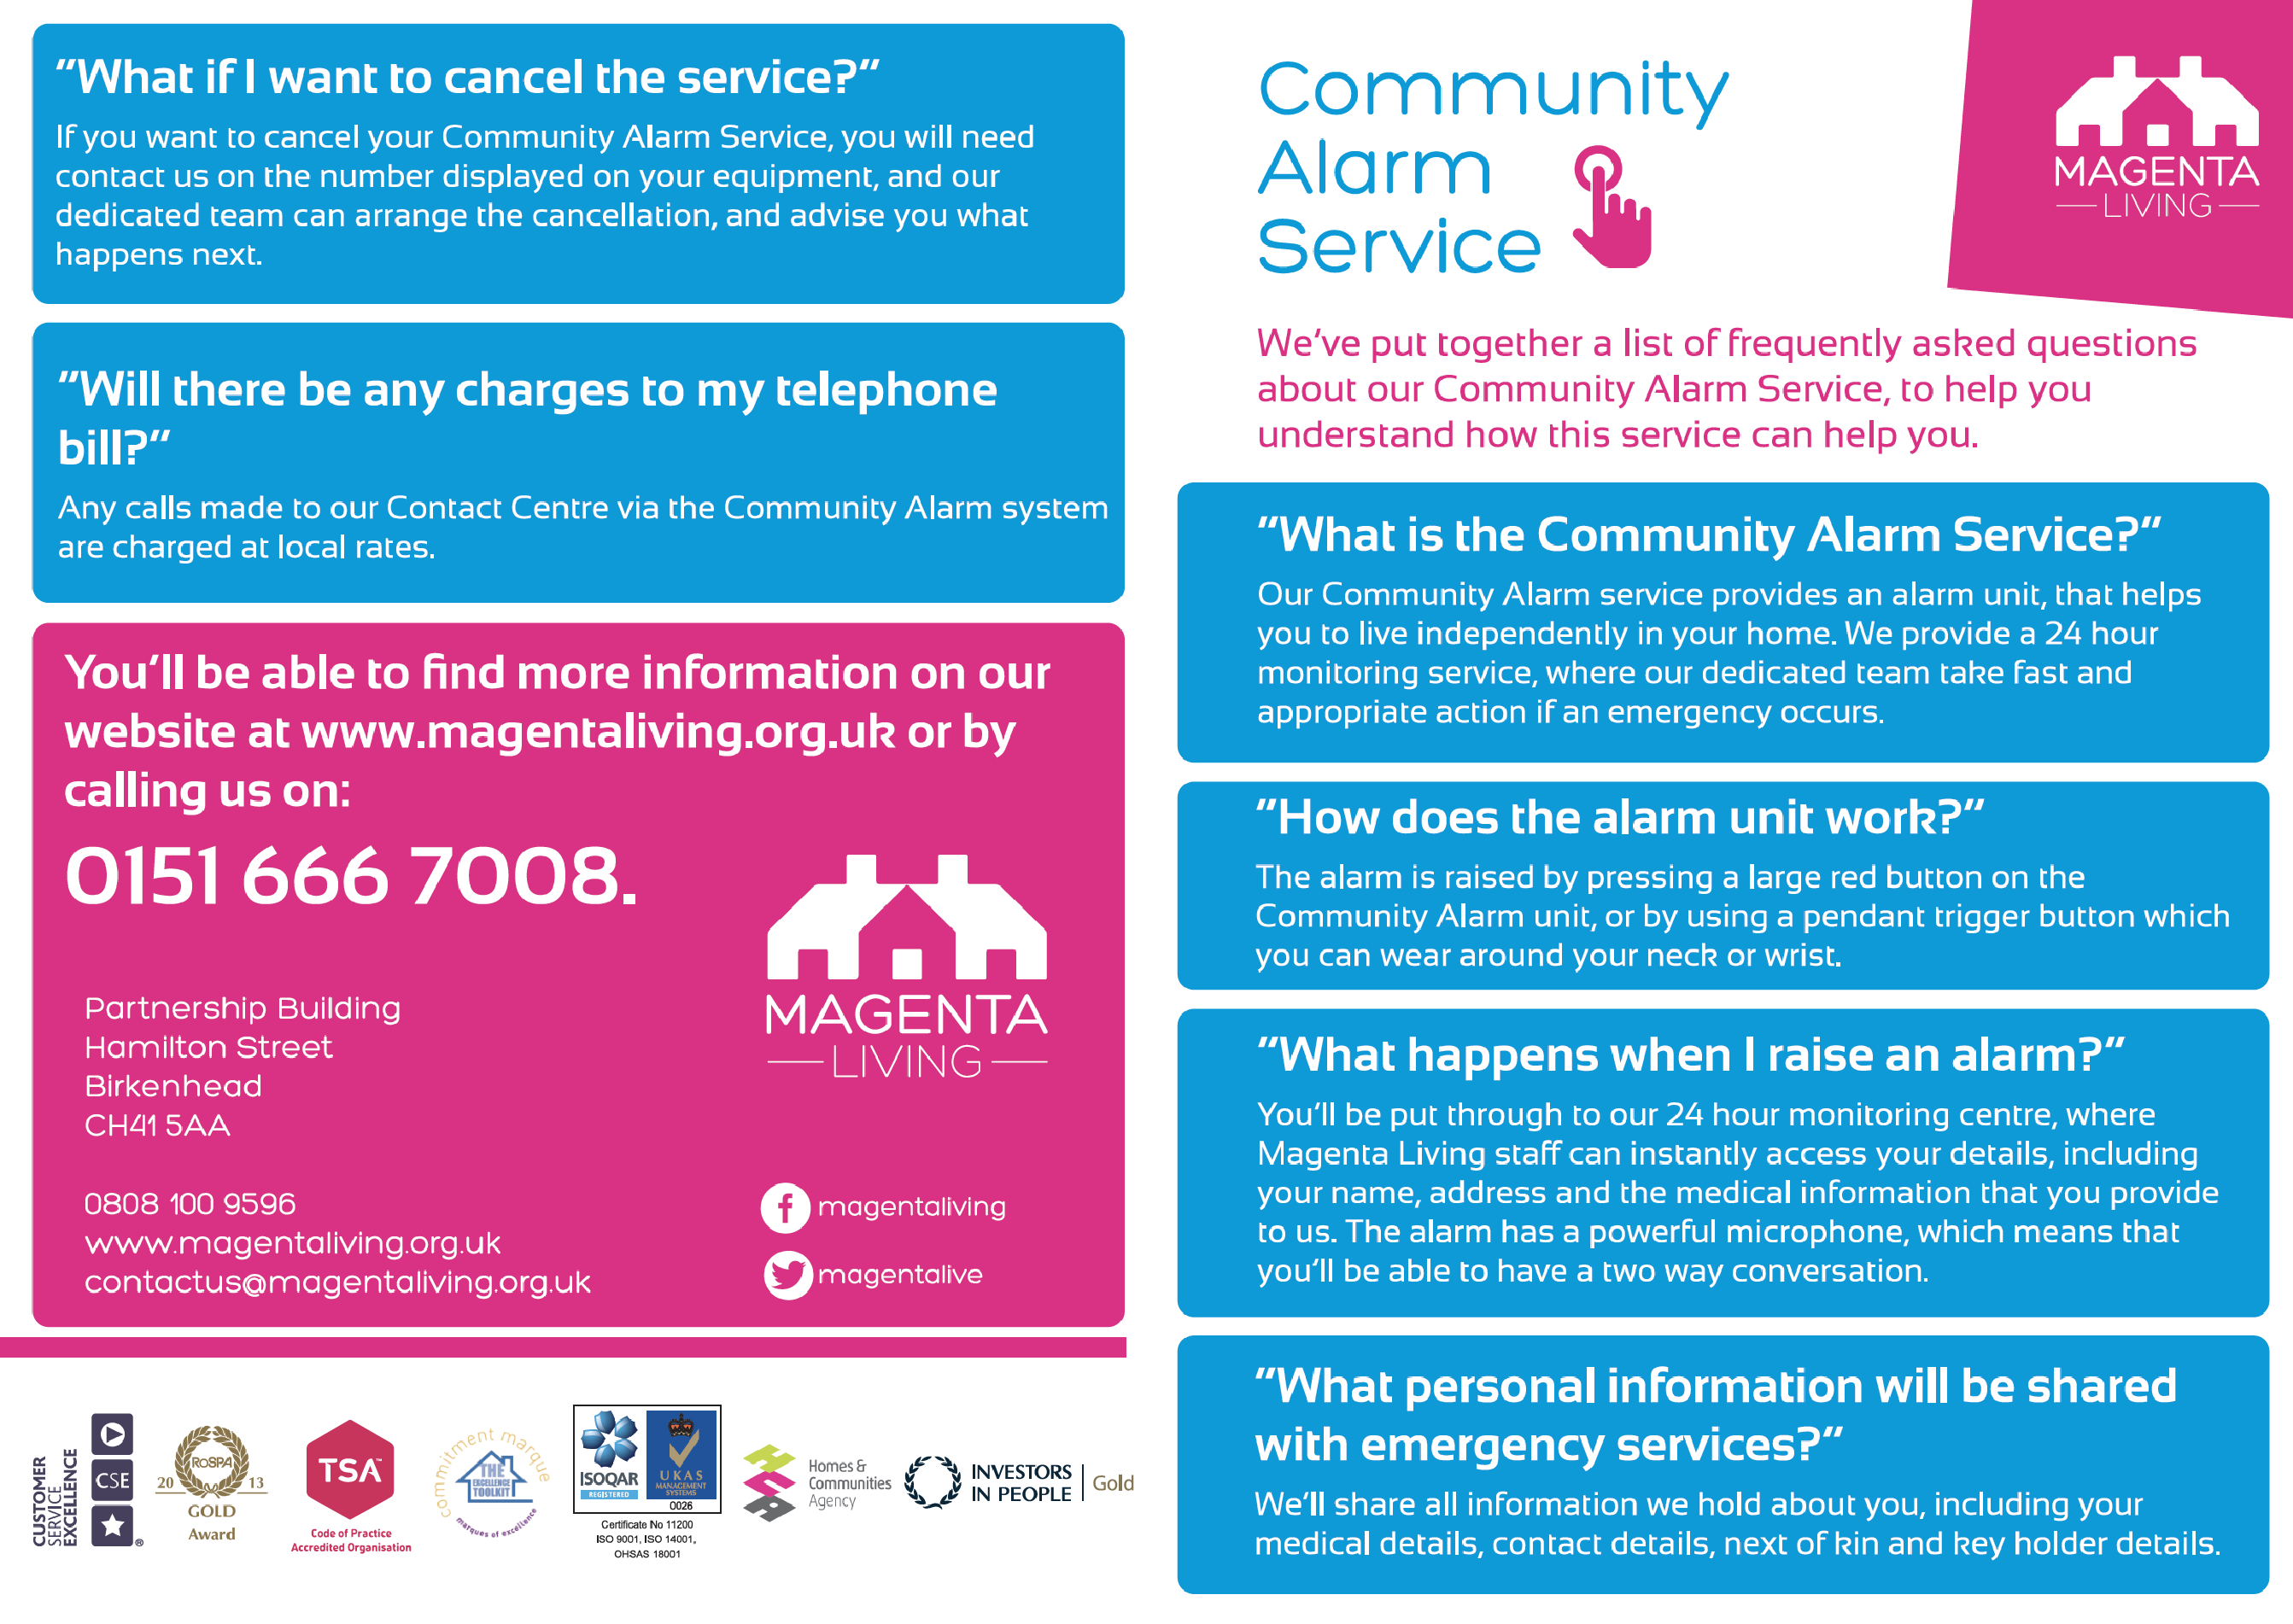 Community Alarm Services - FAQ 1